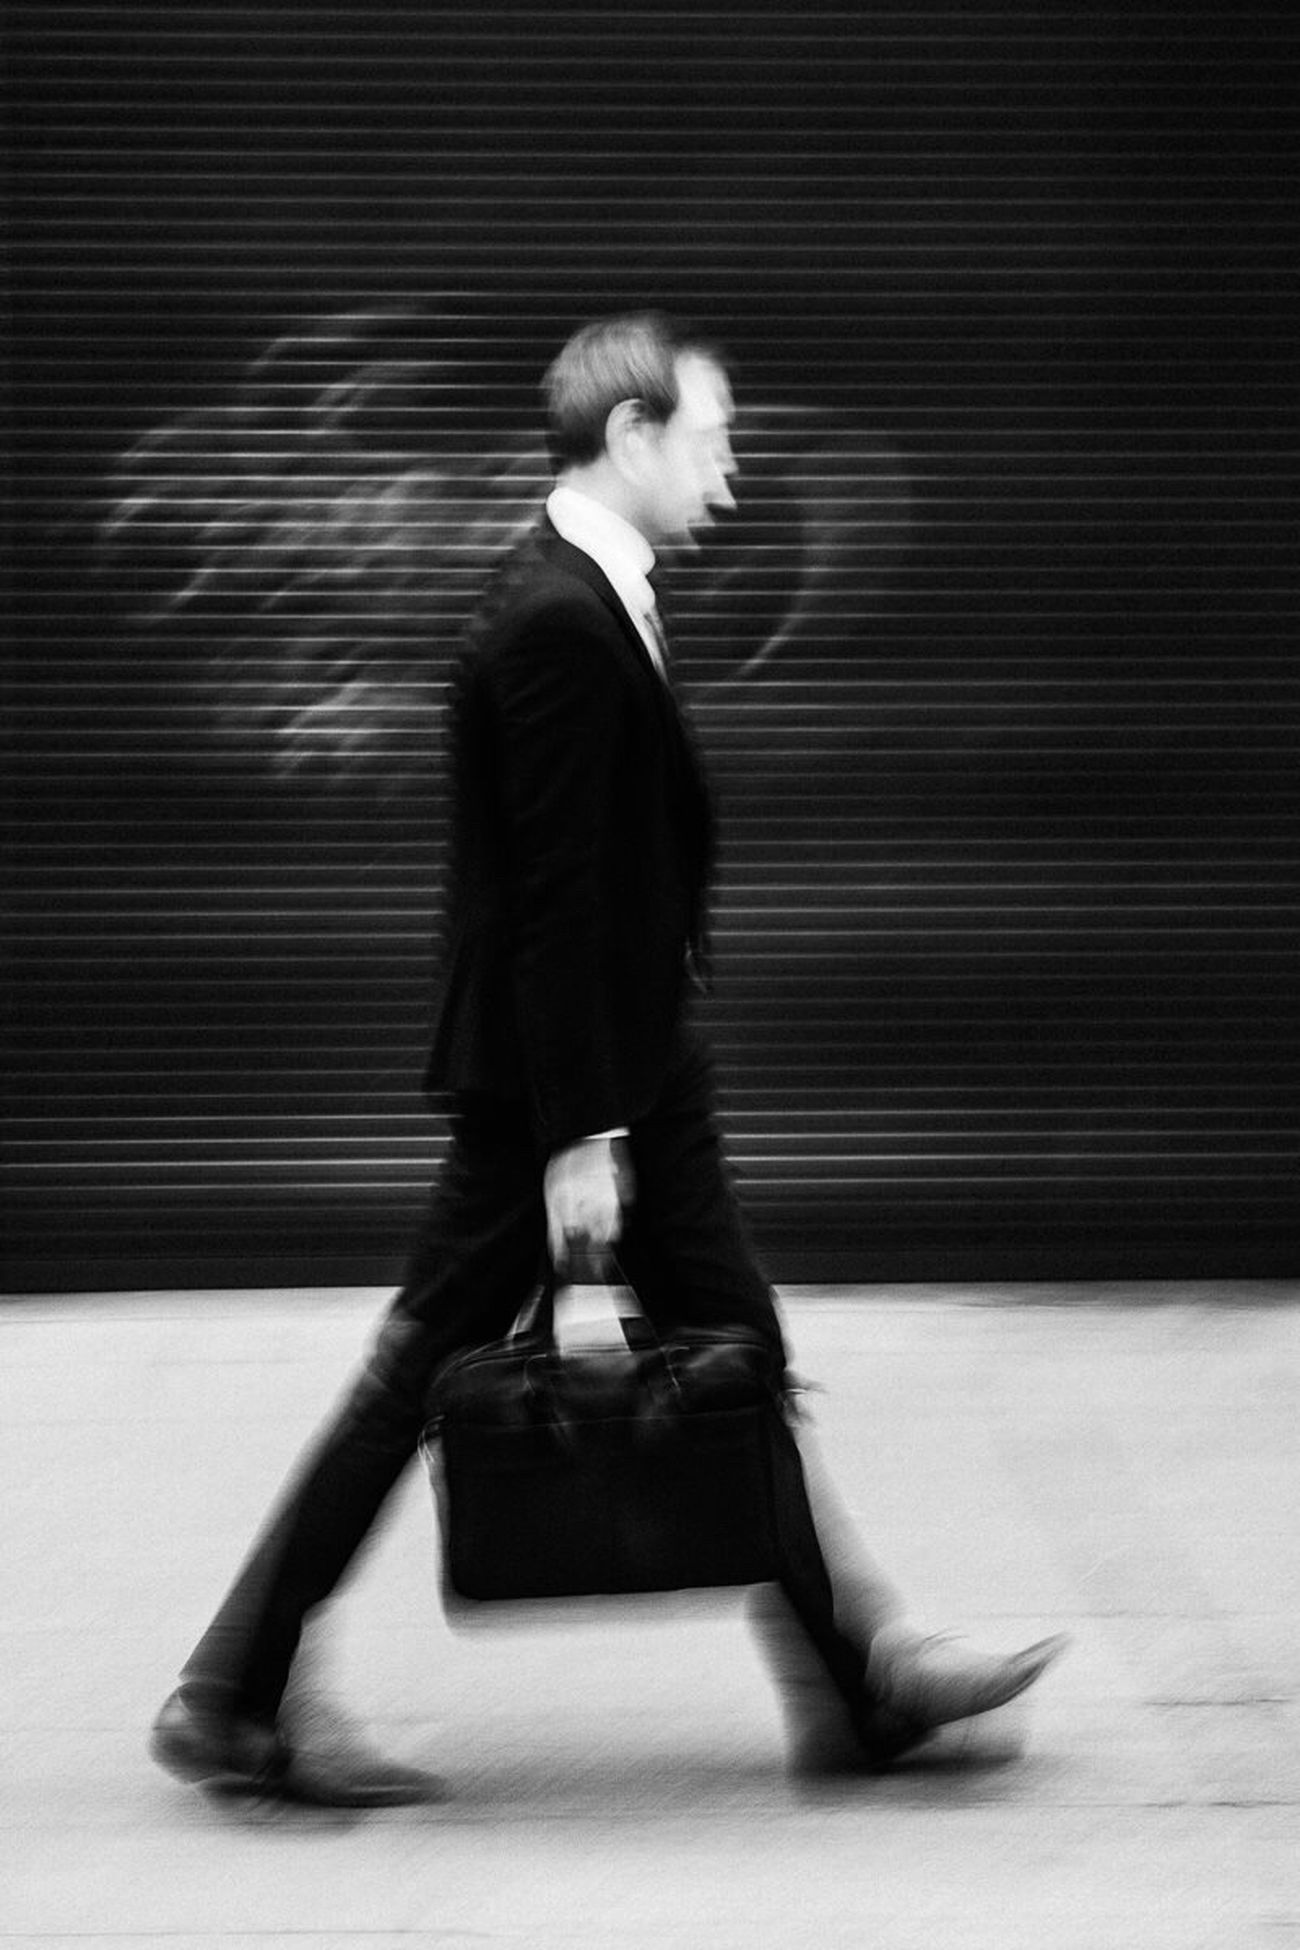 Streetphotography Businessman Vibration Blurred Motion Blackandwhite Walking Around